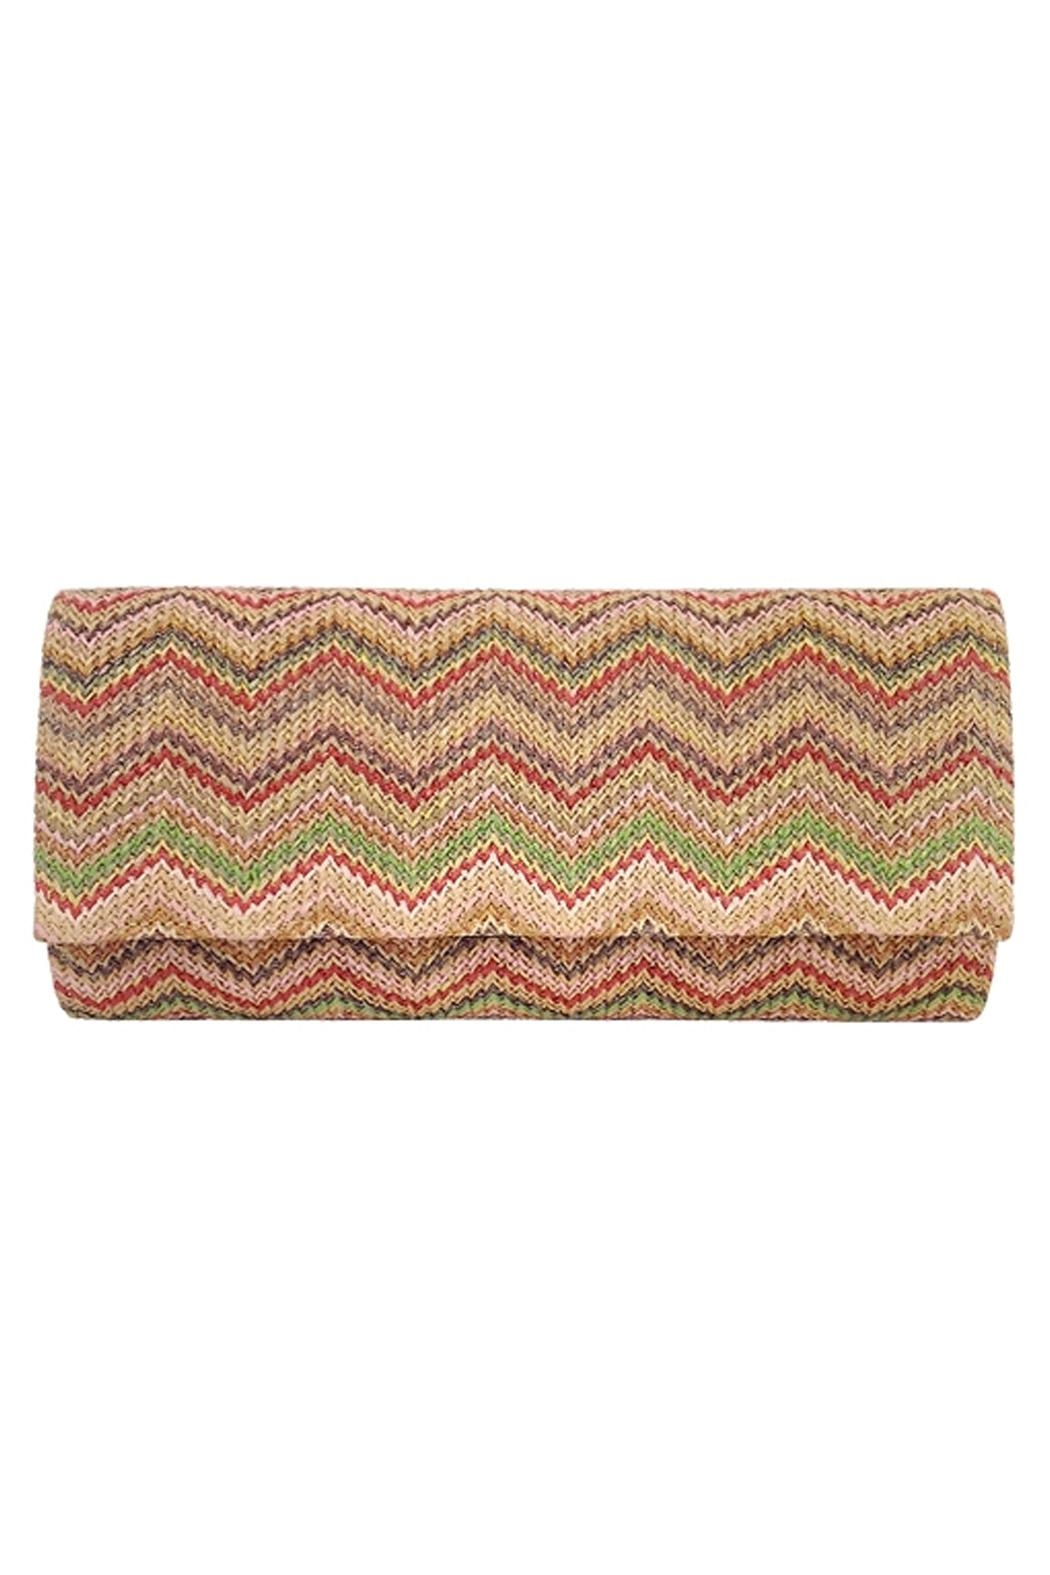 Wild Lilies Jewelry  Chevron Envelope Clutch - Main Image